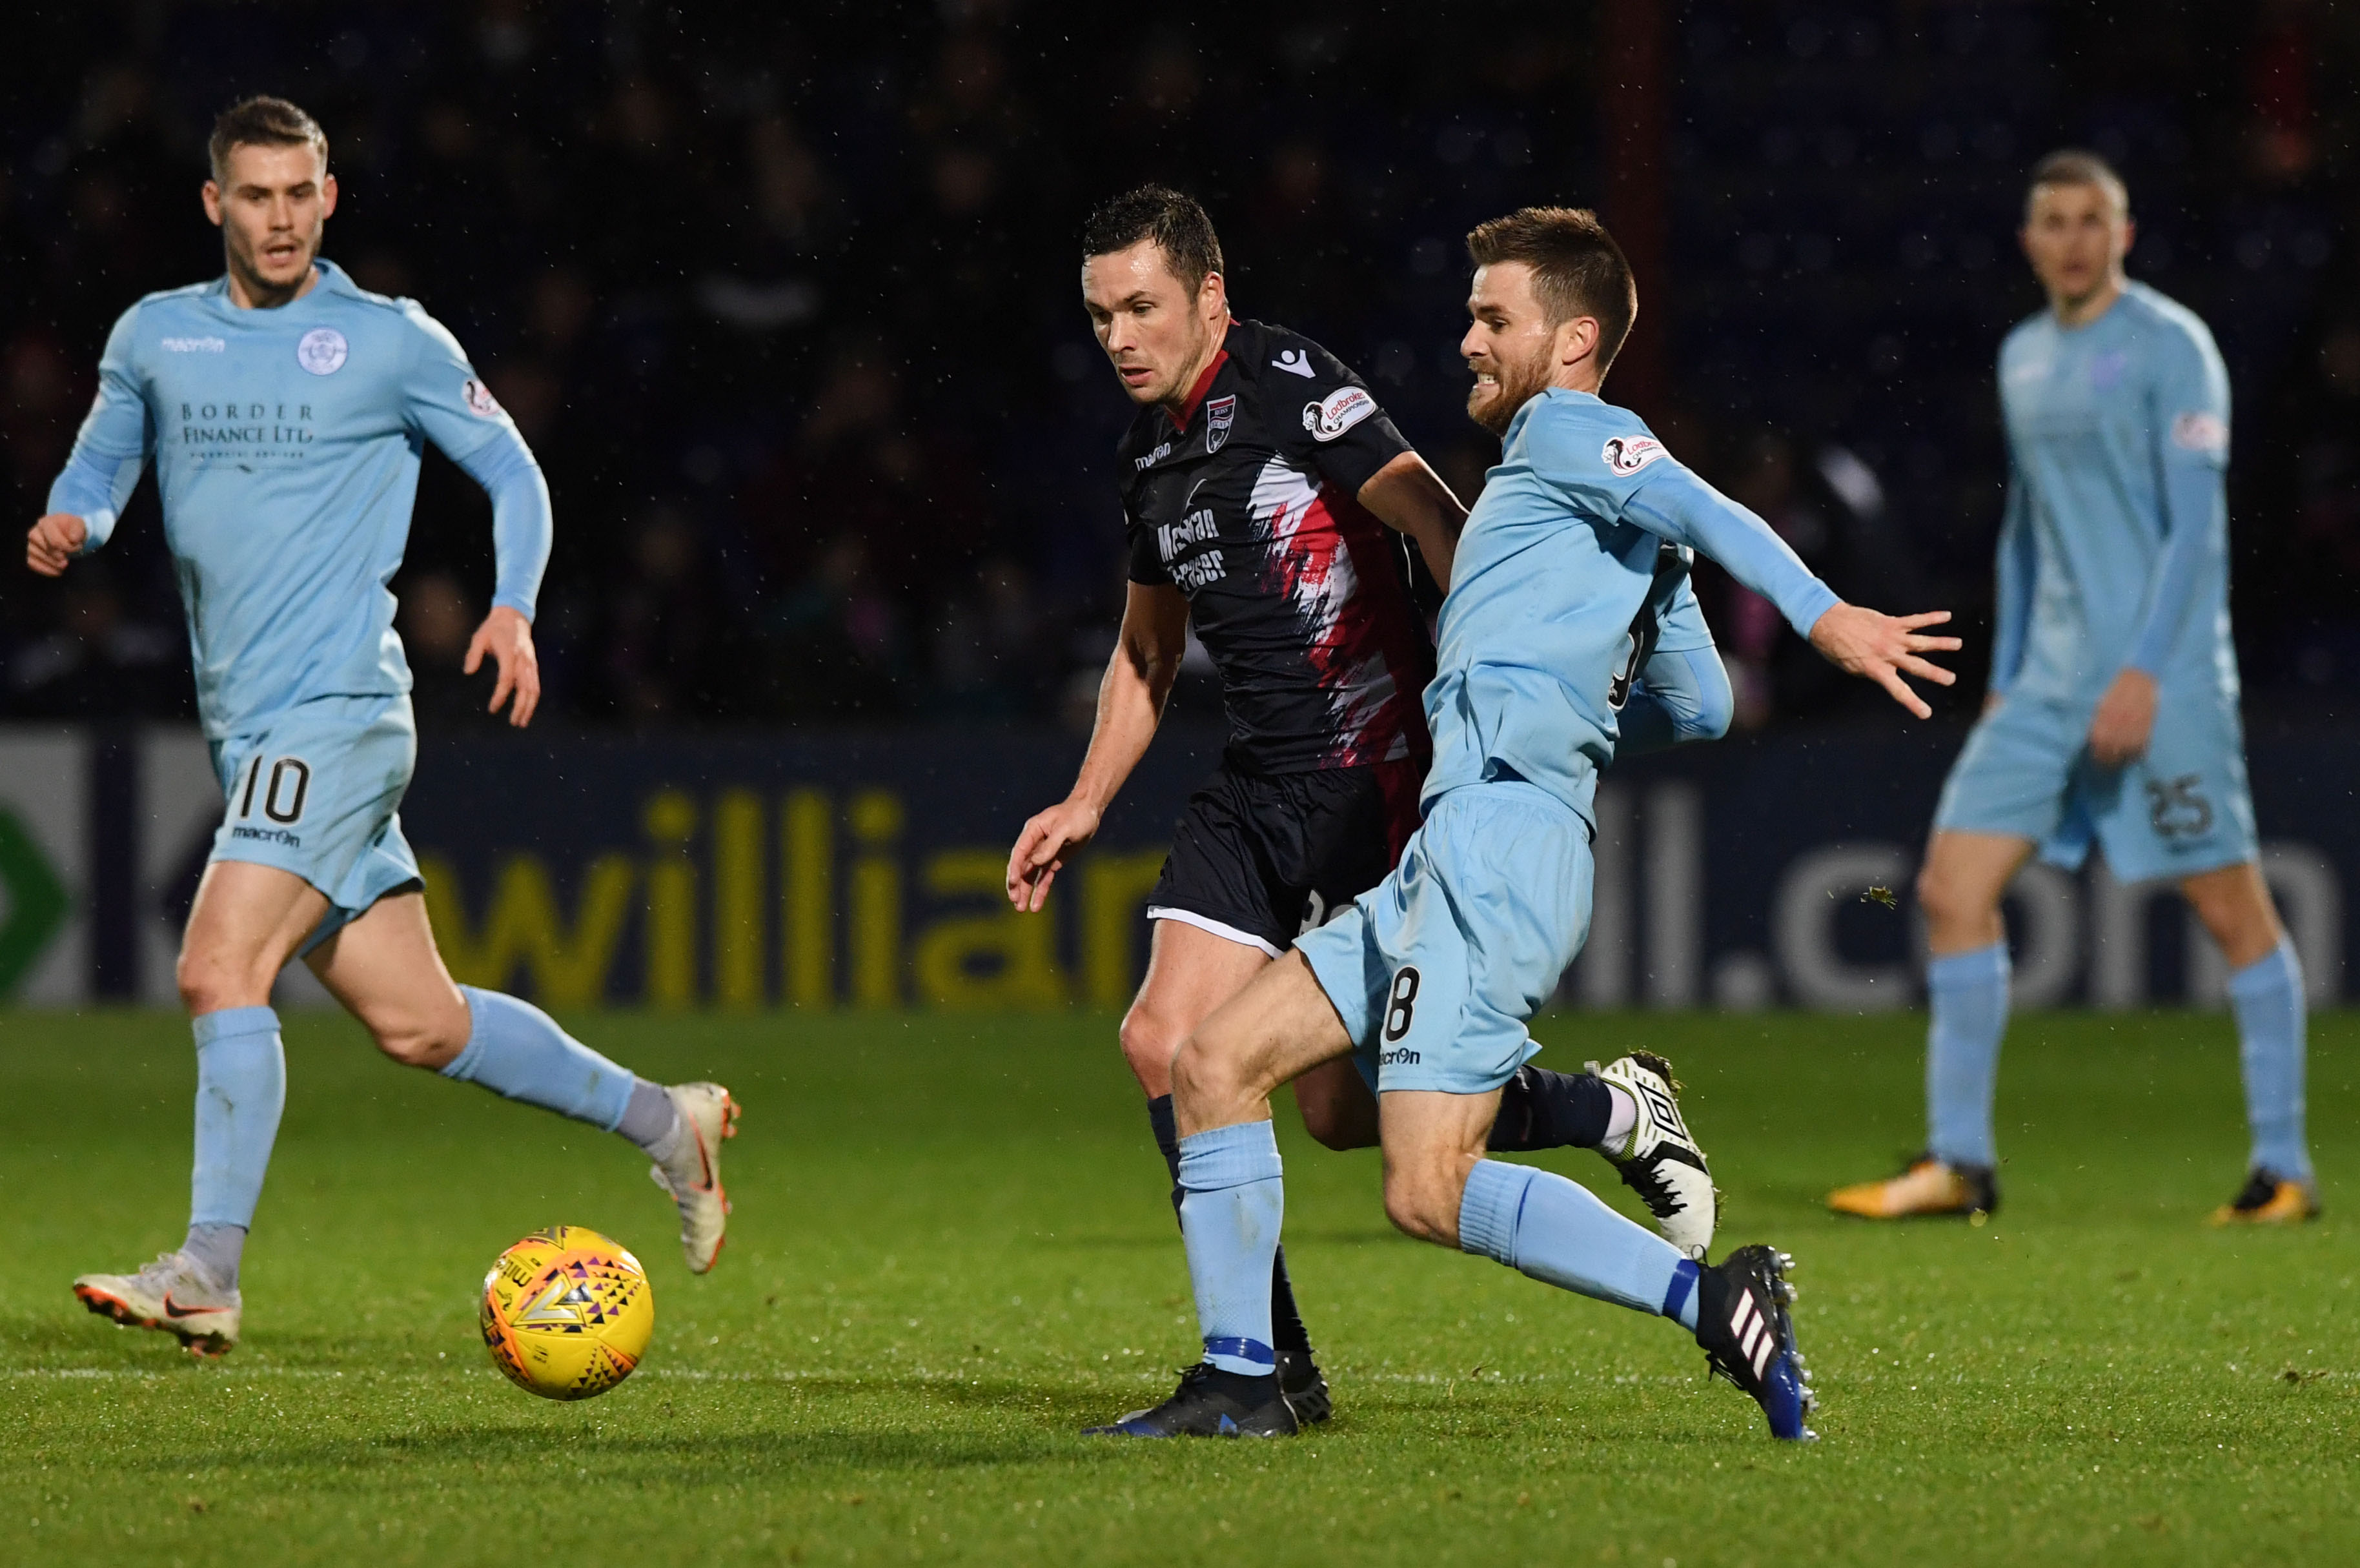 08/12/18 LADBROKES CHAMPIONSHIP ROSS COUNTY V QUEEN OF THE SOUTH (1-1) GLOBAL ENERGY STADIUM - DINGWALL Ross County's Don Cowie (L) and Queen of the South's Kyle Jacobs compete for the ball